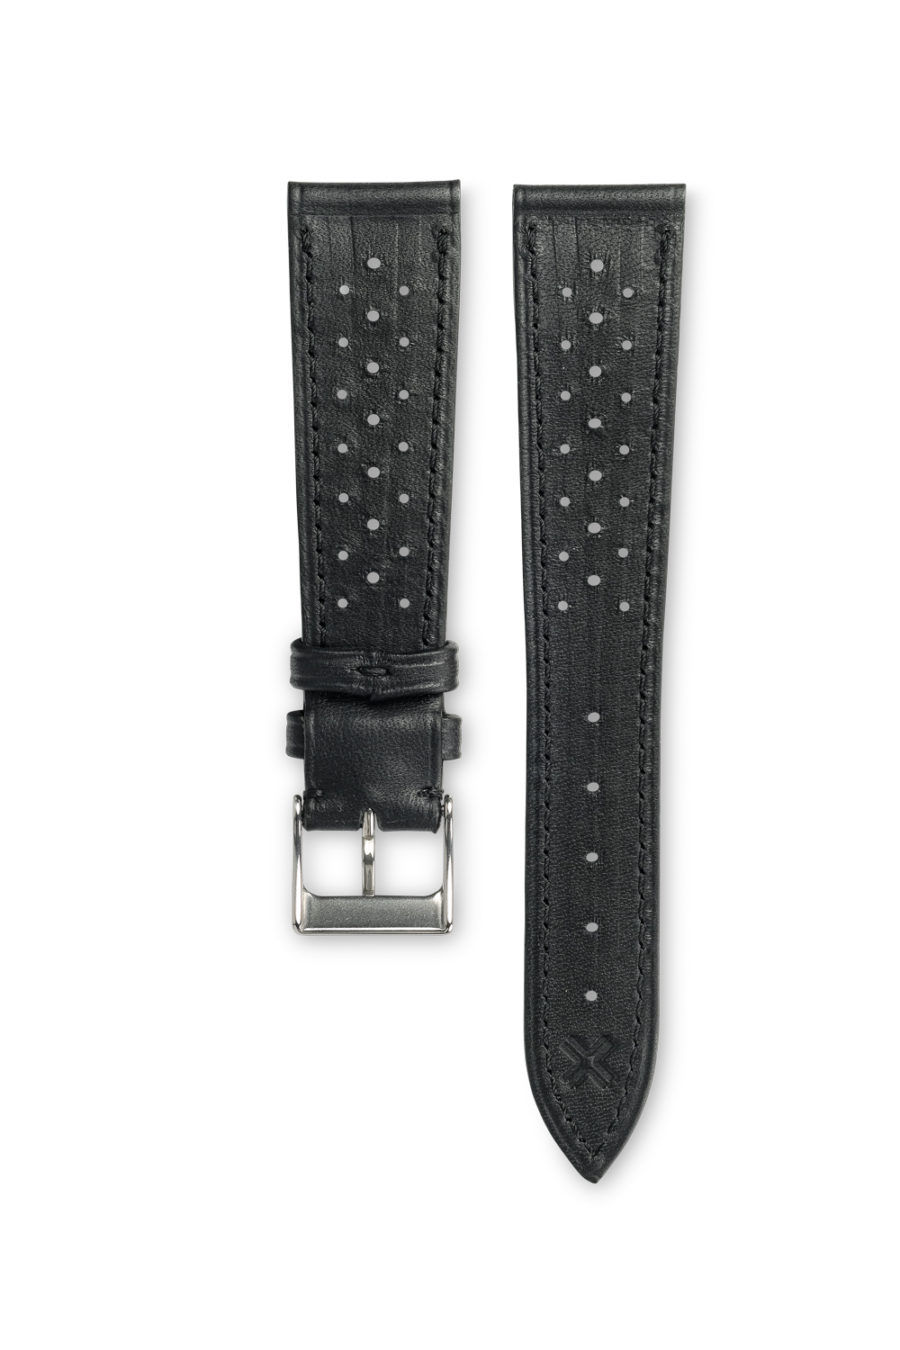 Smooth Racing Deep Black leather watch strap - tone on tone stitching - LUGS brand